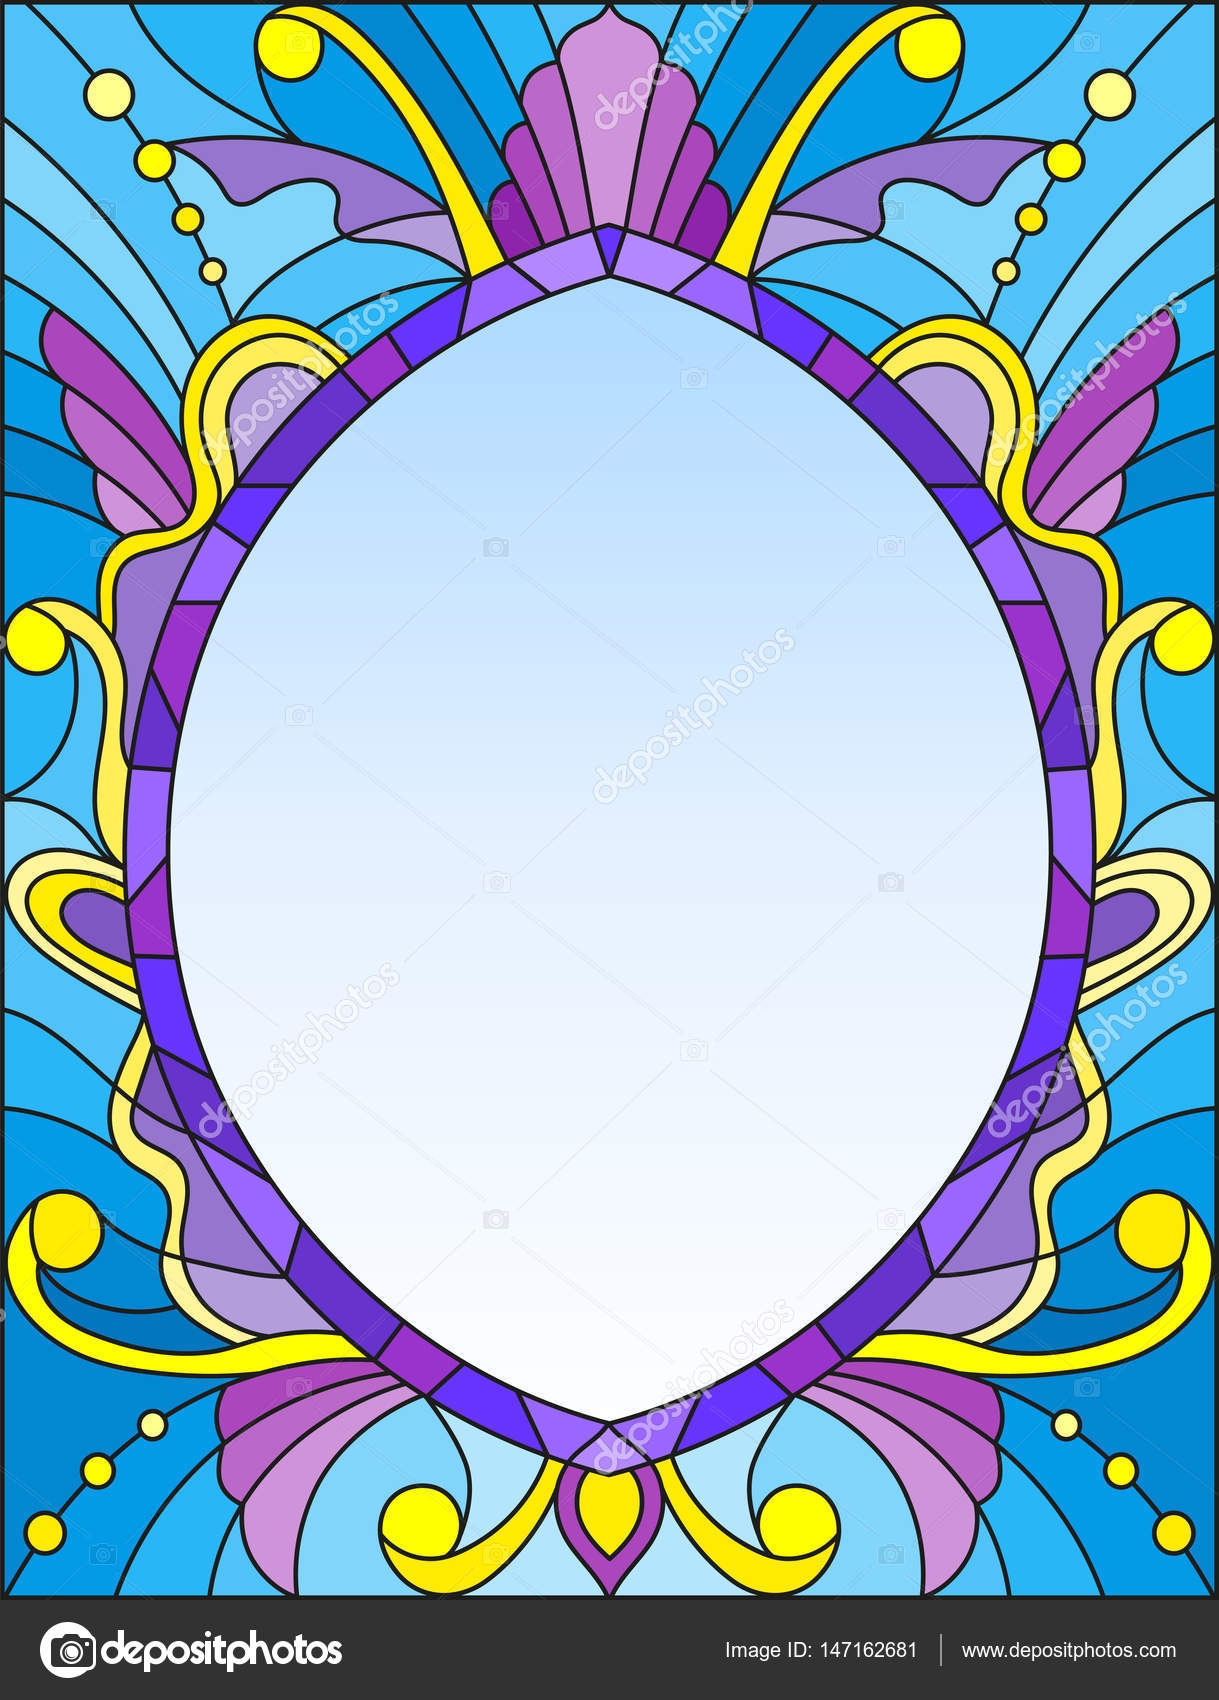 Illustration In Stained Glass Style Frame With Abstract Patterns And